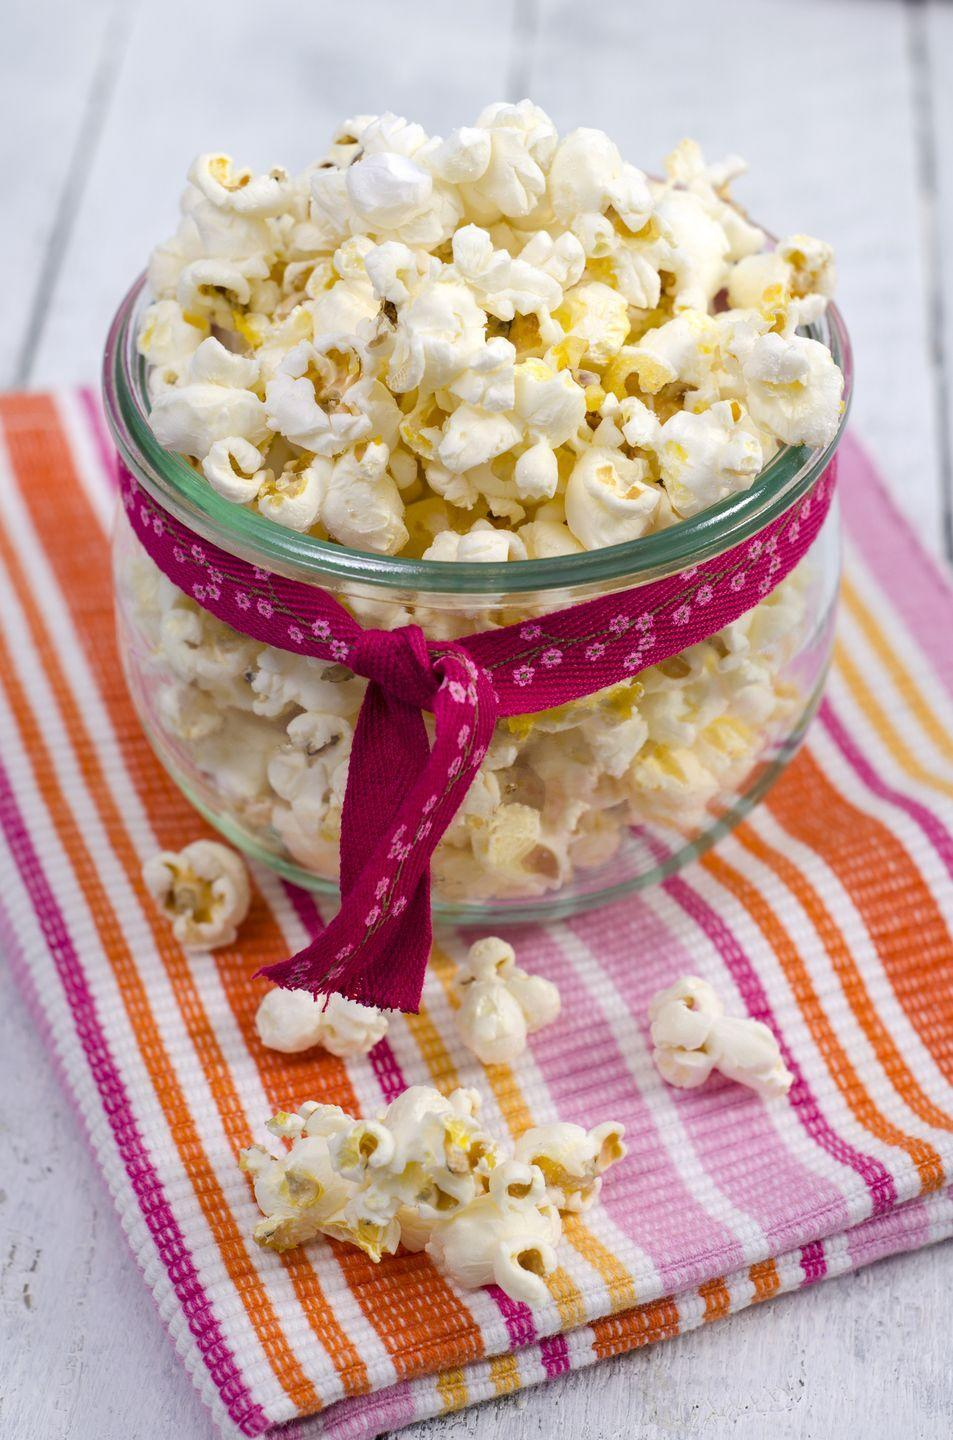 """<p>Full of fiber and light on calories, popcorn is a great snack option. If you're feeling a bit wild, you can punch up your health benefits by eating pop <a href=""""https://www.goodhousekeeping.com/food-recipes/healthy/a37151/cauliflower-popcorn-recipe/"""" rel=""""nofollow noopener"""" target=""""_blank"""" data-ylk=""""slk:caulicorn"""" class=""""link rapid-noclick-resp"""">caulicorn</a>.</p><p>On a cutting board, pile ¼ cup chopped parsley, 1 small clove chopped garlic, ½ teaspoon lemon zest, and 1 tablespoon finely grated Parmigiano Reggiano on top of each other and chop all together until fine. In a large bowl, toss 10 cups air-popped popcorn while spritzing grapeseed oil with a mister. Add the gremolata andand ½ teaspoon salt and toss until coated. Serves 2.</p>"""